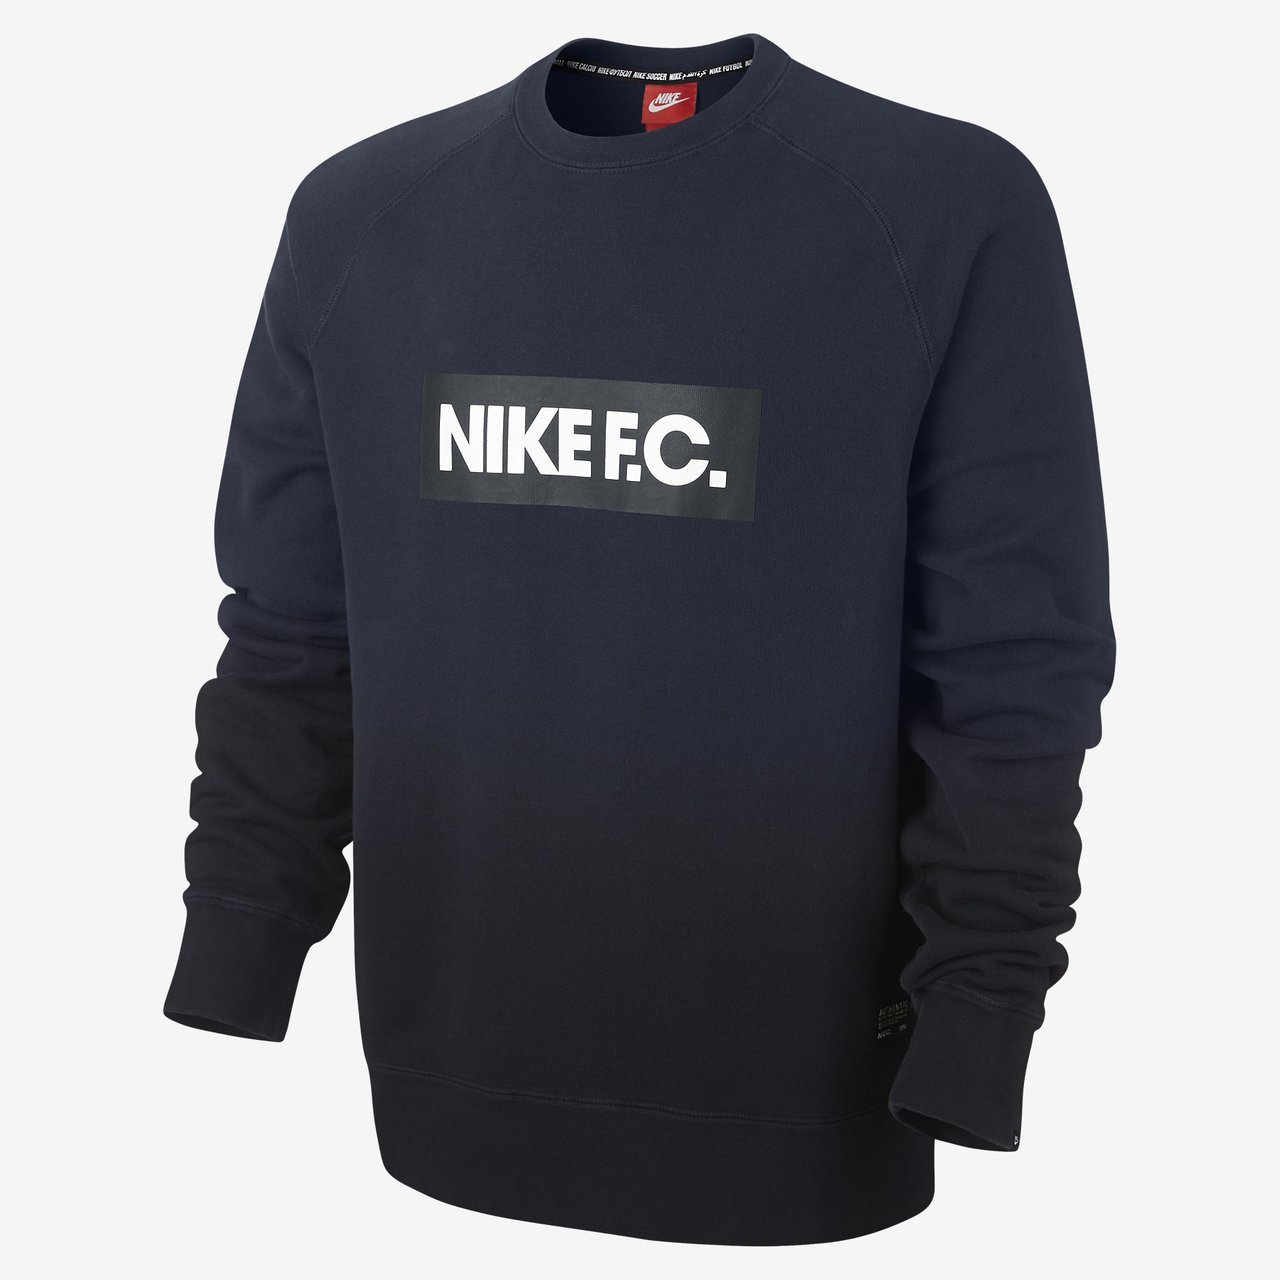 nike f c aw77 crew sweatshirt obsidian black. Black Bedroom Furniture Sets. Home Design Ideas